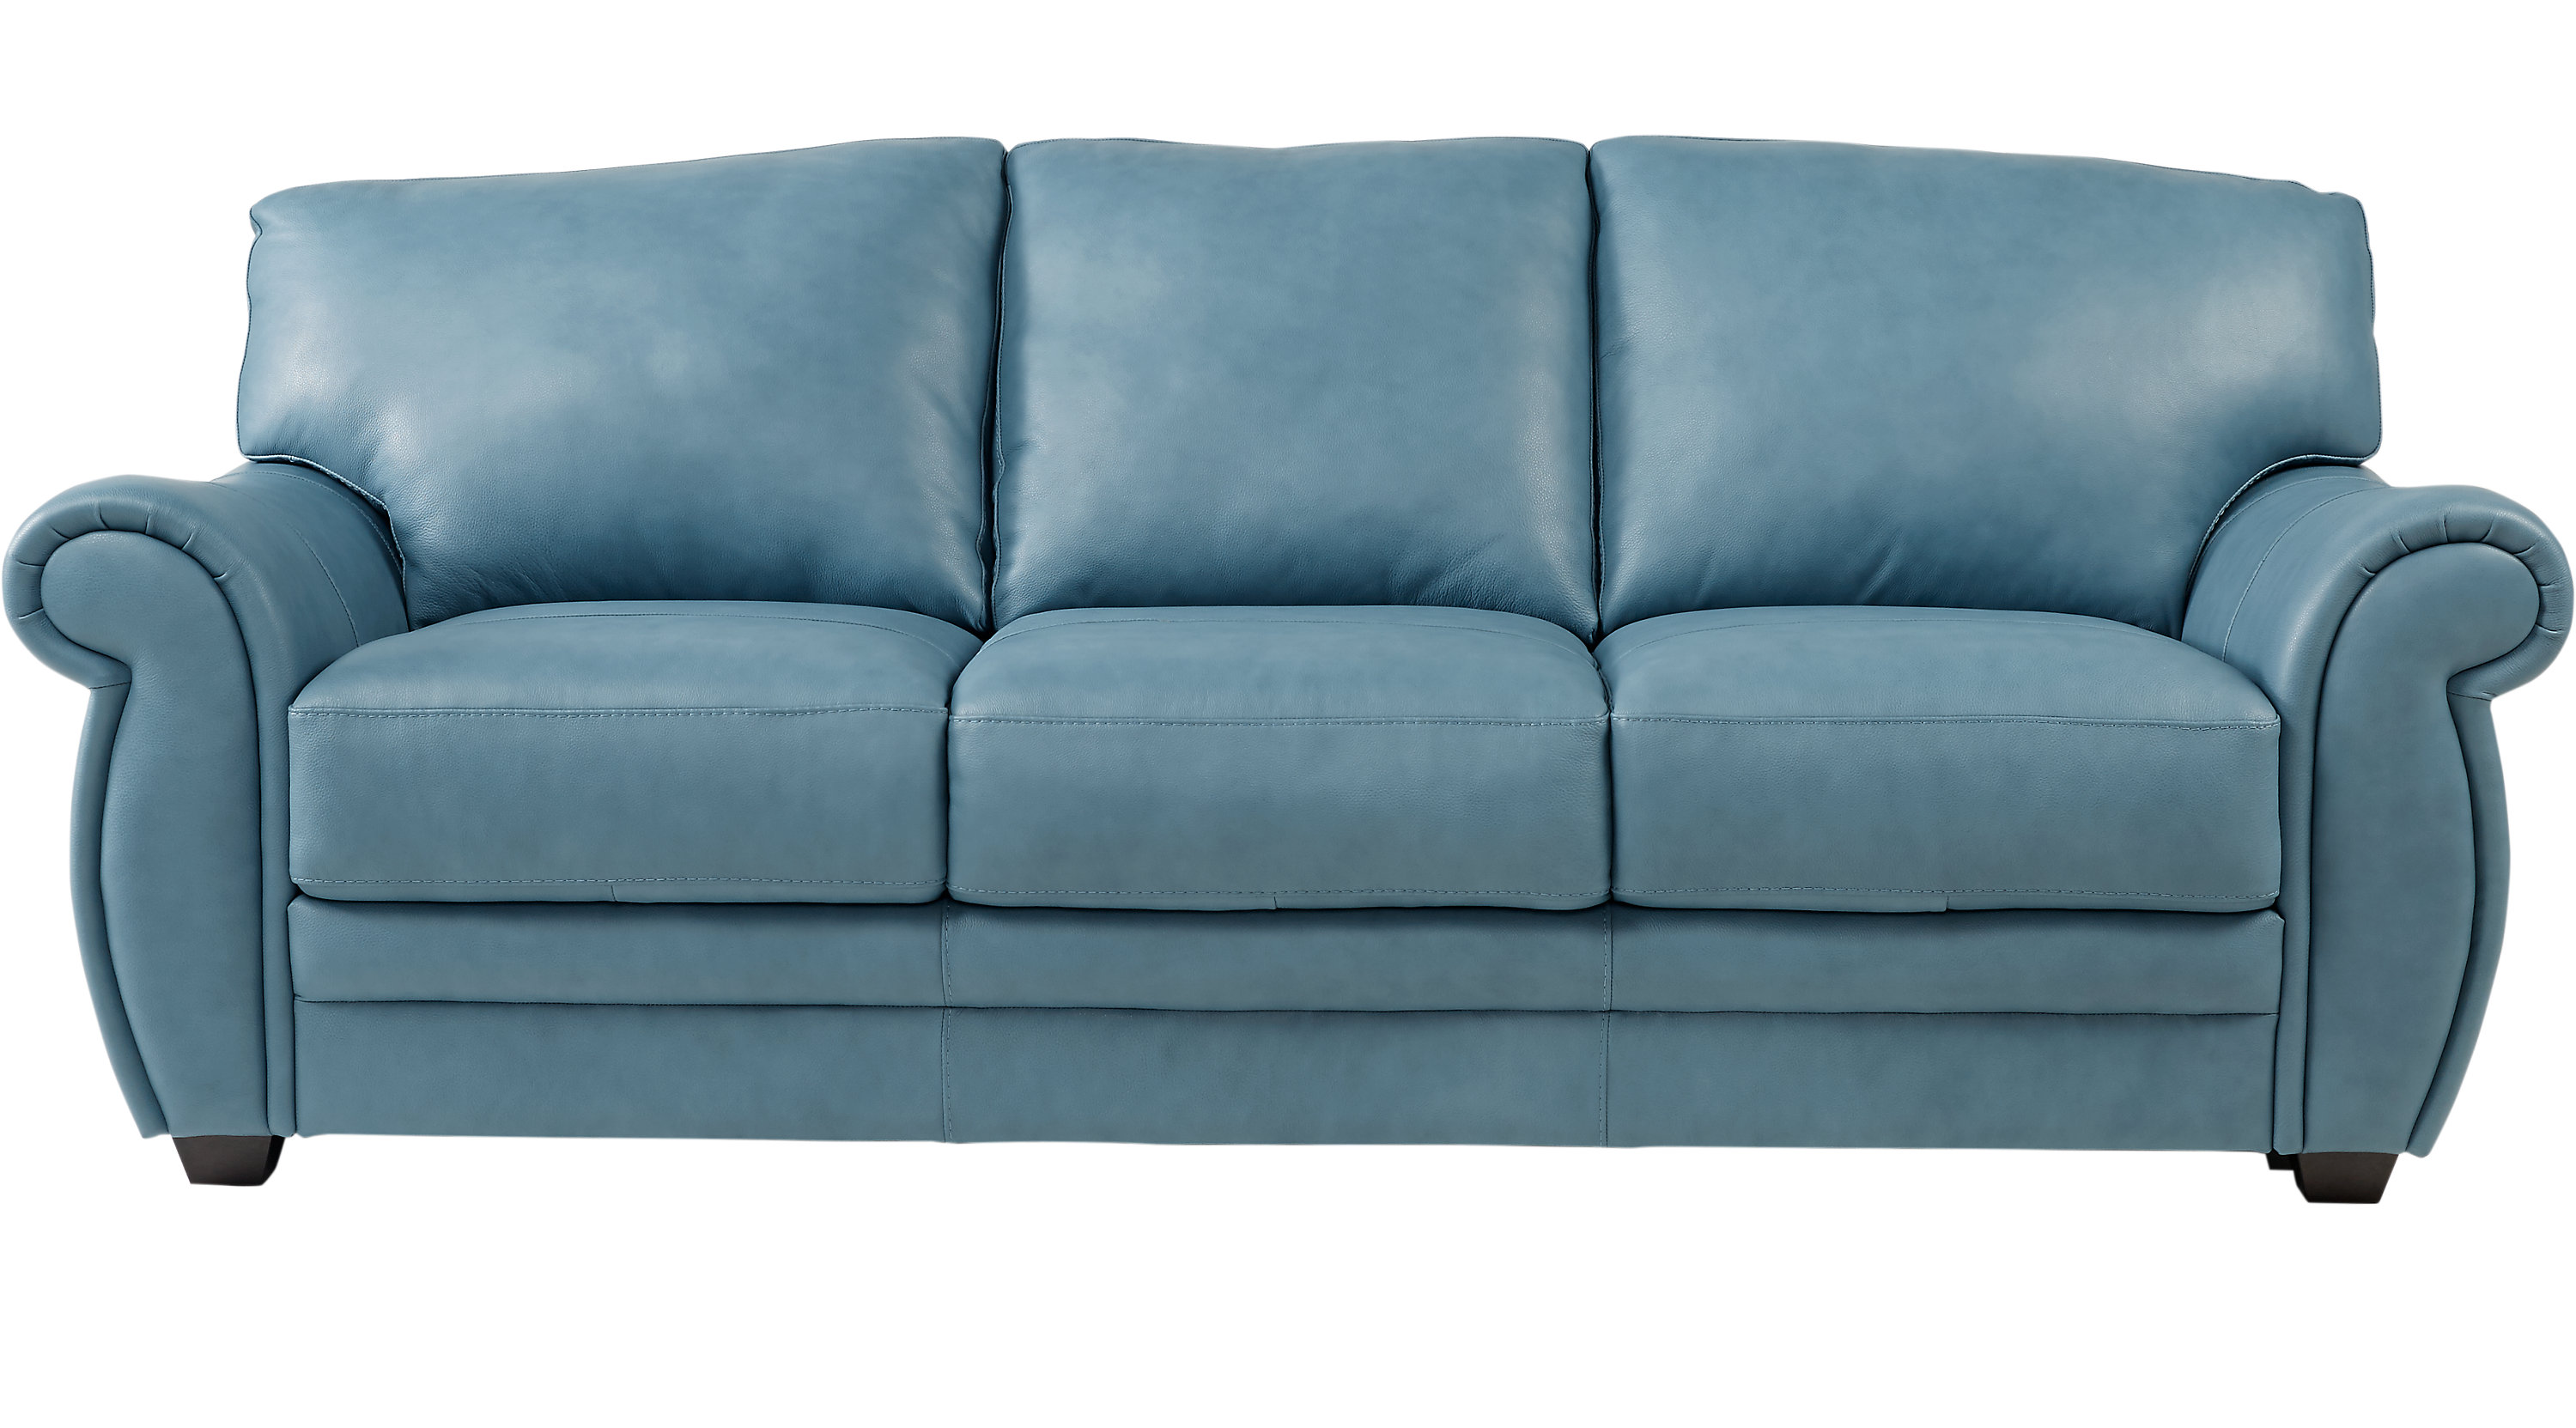 $698.00 - Martello Blue Leather Sofa - Classic - Transitional,